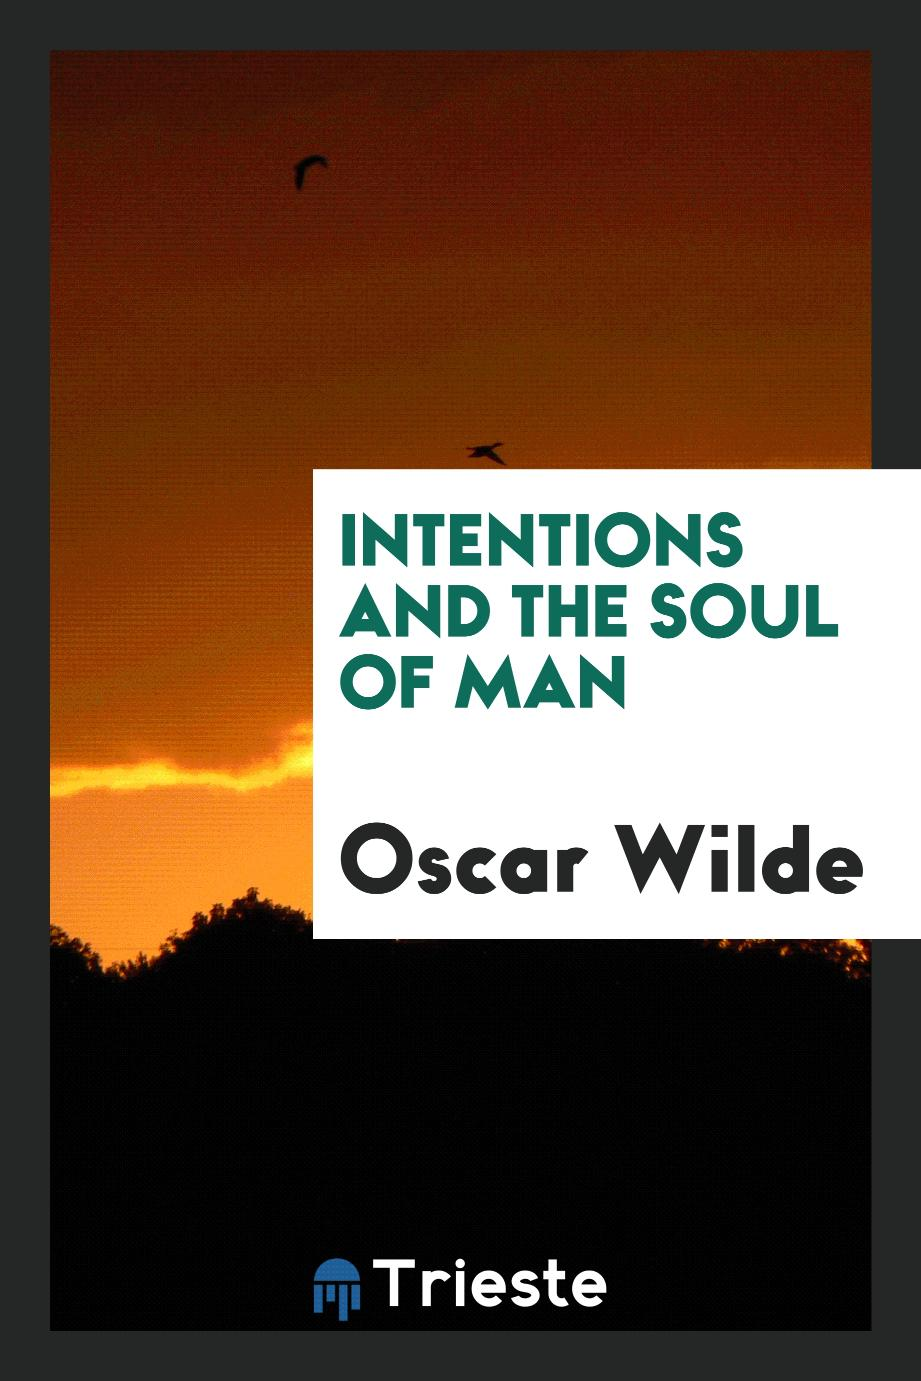 Intentions and the Soul of Man